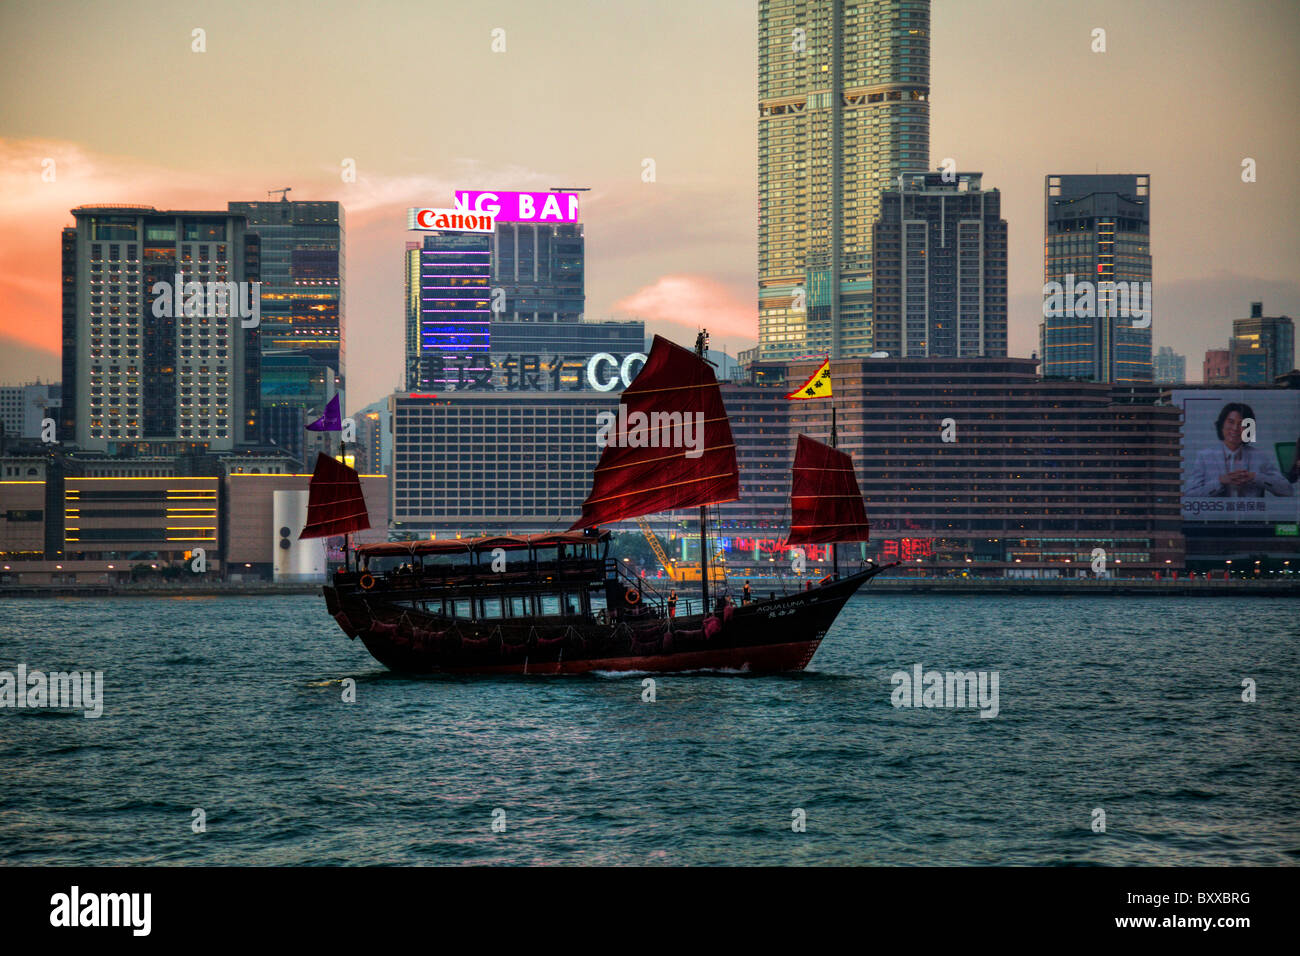 The Kowloon skyline at dusk showing the iconic red sail junk from Hong Kong Island - Stock Image